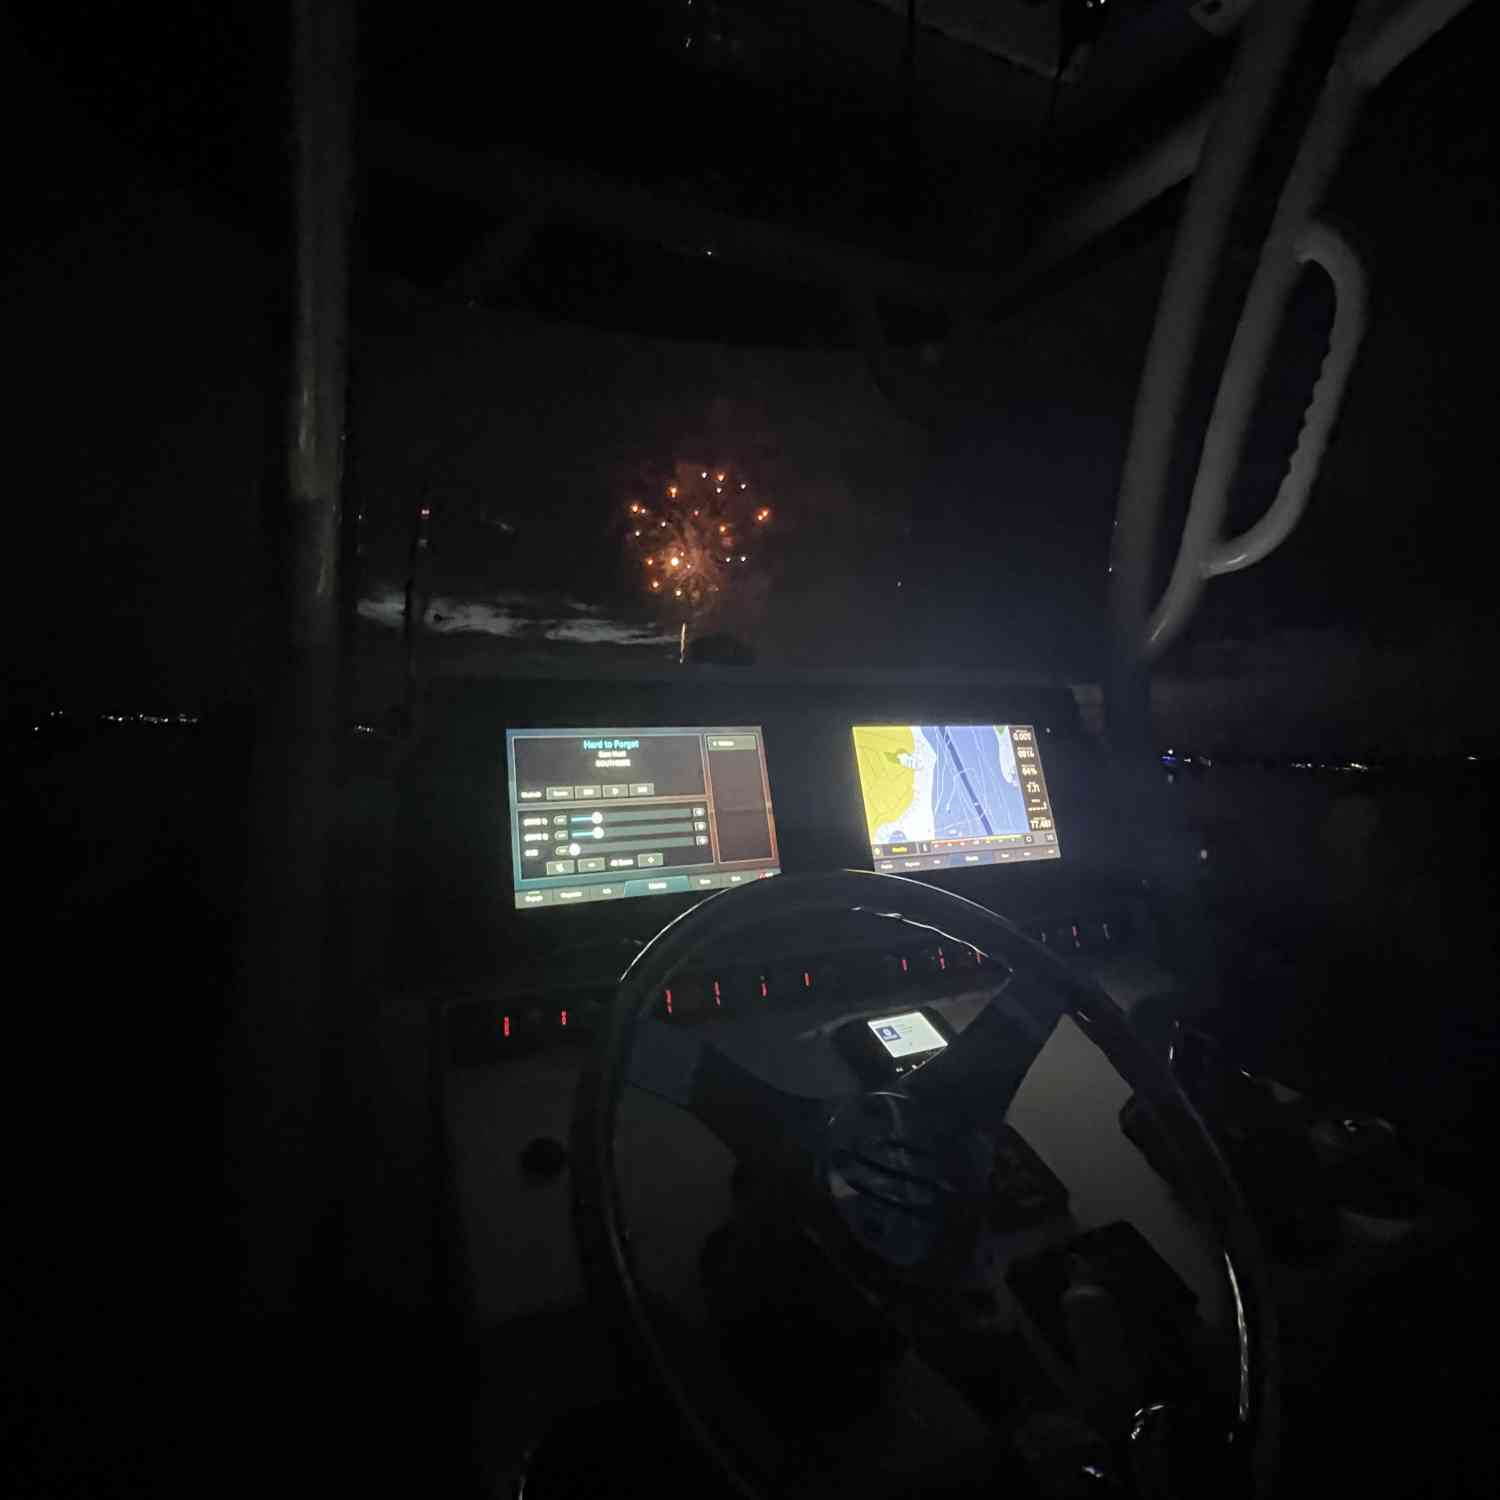 Title: Fireworks in the night - On board their Sportsman Heritage 241 Center Console - Location: Wilson point maryland. Participating in the Photo Contest #SportsmanJuly2021